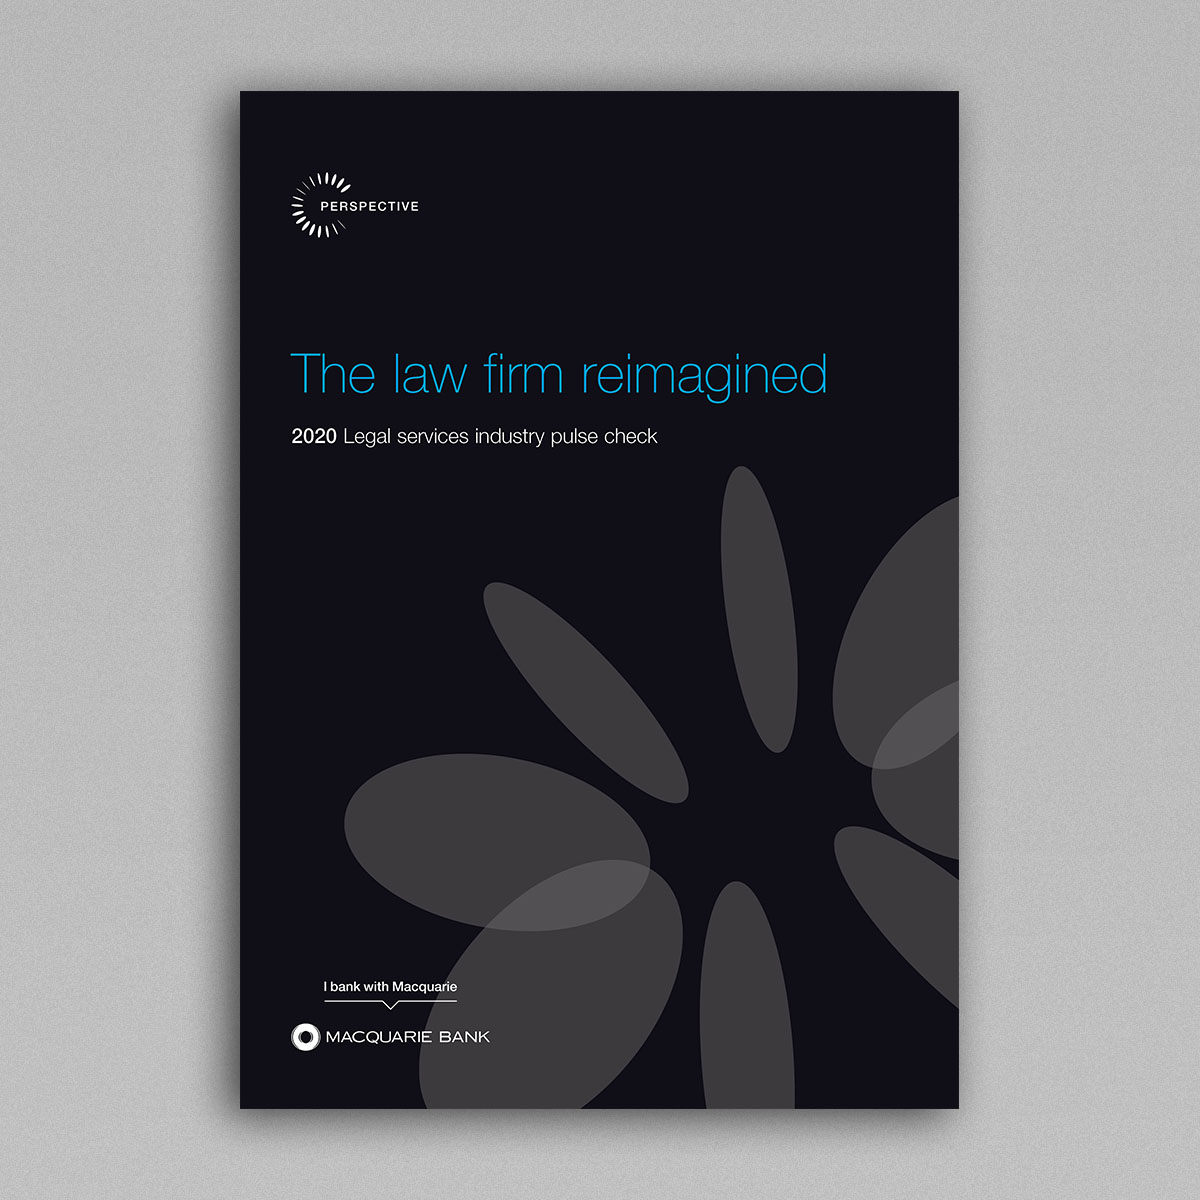 The law firm reimaged report